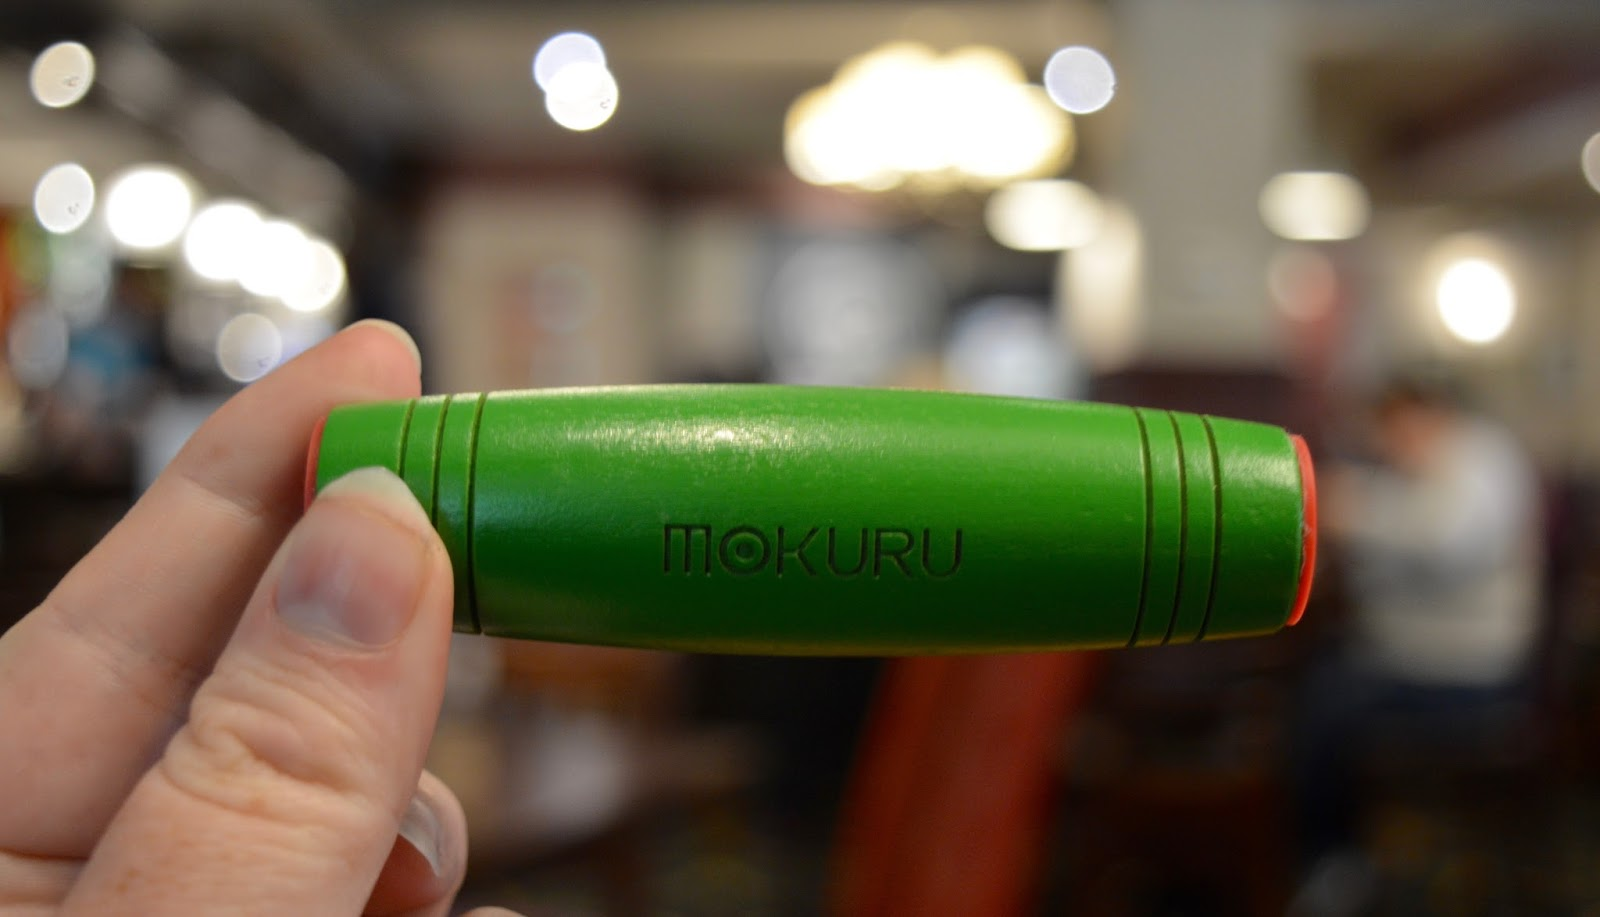 MOKURU | a new fidget toy craze to hit the UK that everyone's talking about & is the perfect travel toy for summer 2017